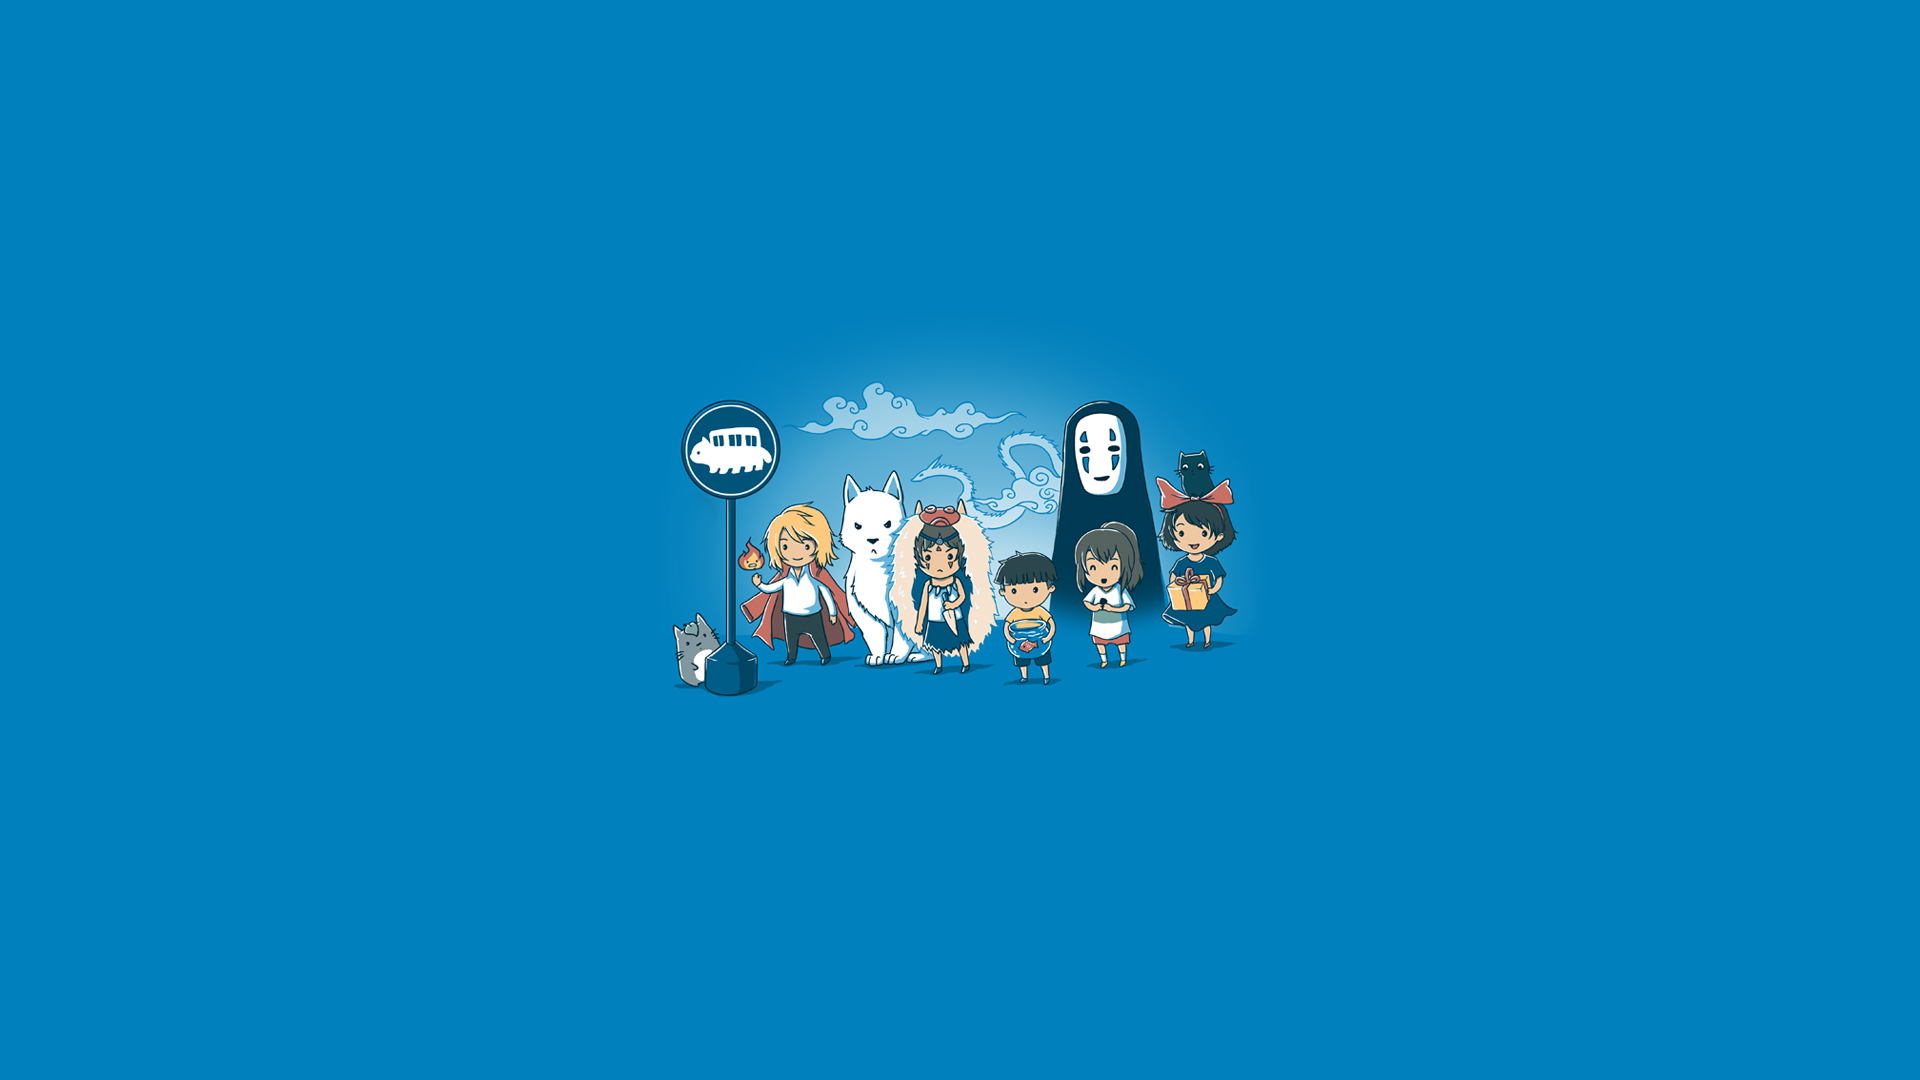 anime-Studio-Ghibli-My-Neighbor-Totoro-Totoro-Howl-s-Moving-Castle-Princess-Mononoke-Sp-wallpaper-wp36016